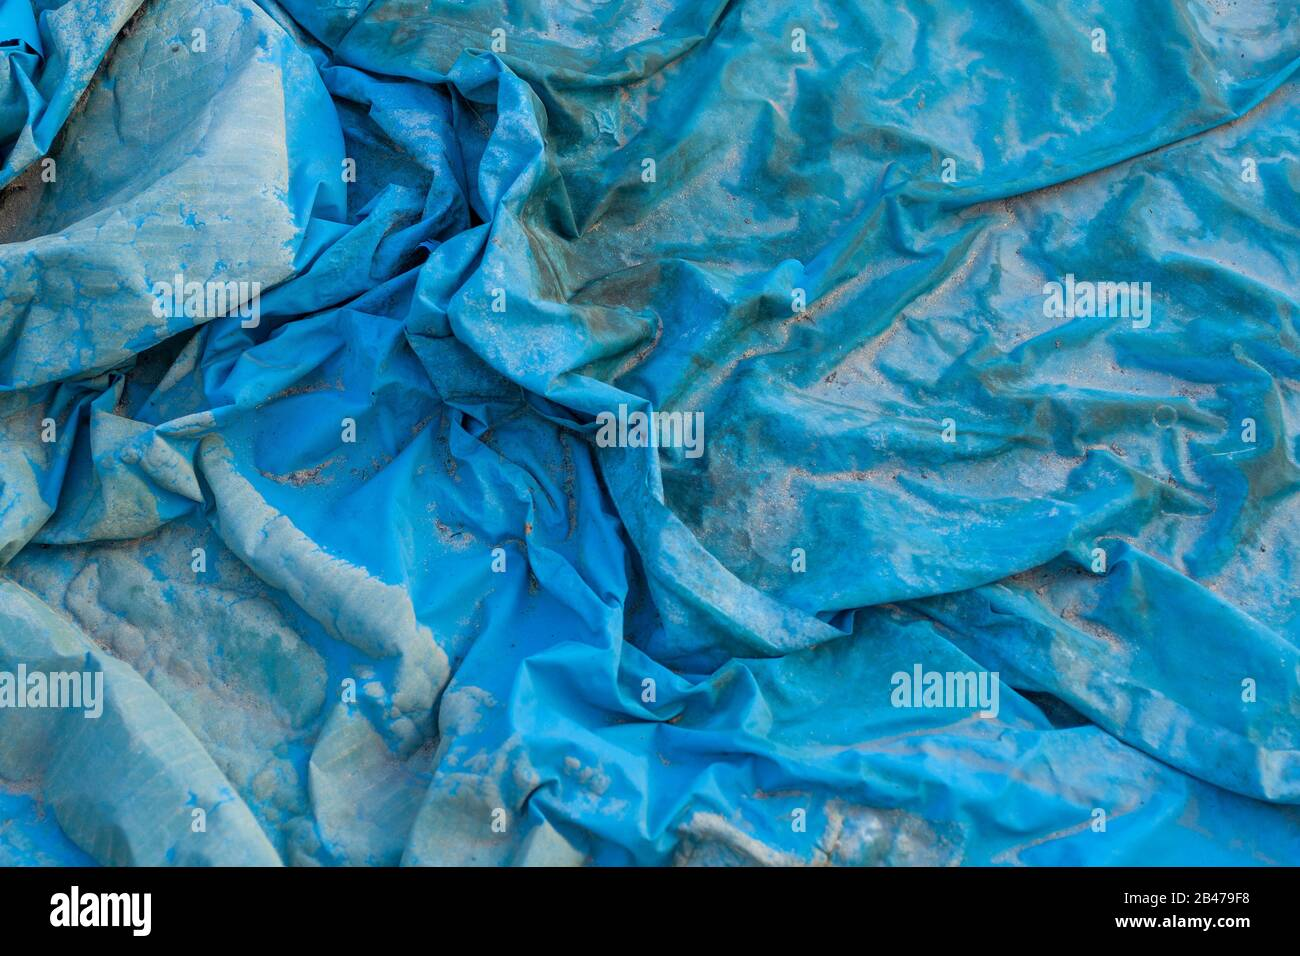 Closeup shot of a wrinkled blue plastic film texture Stock Photo